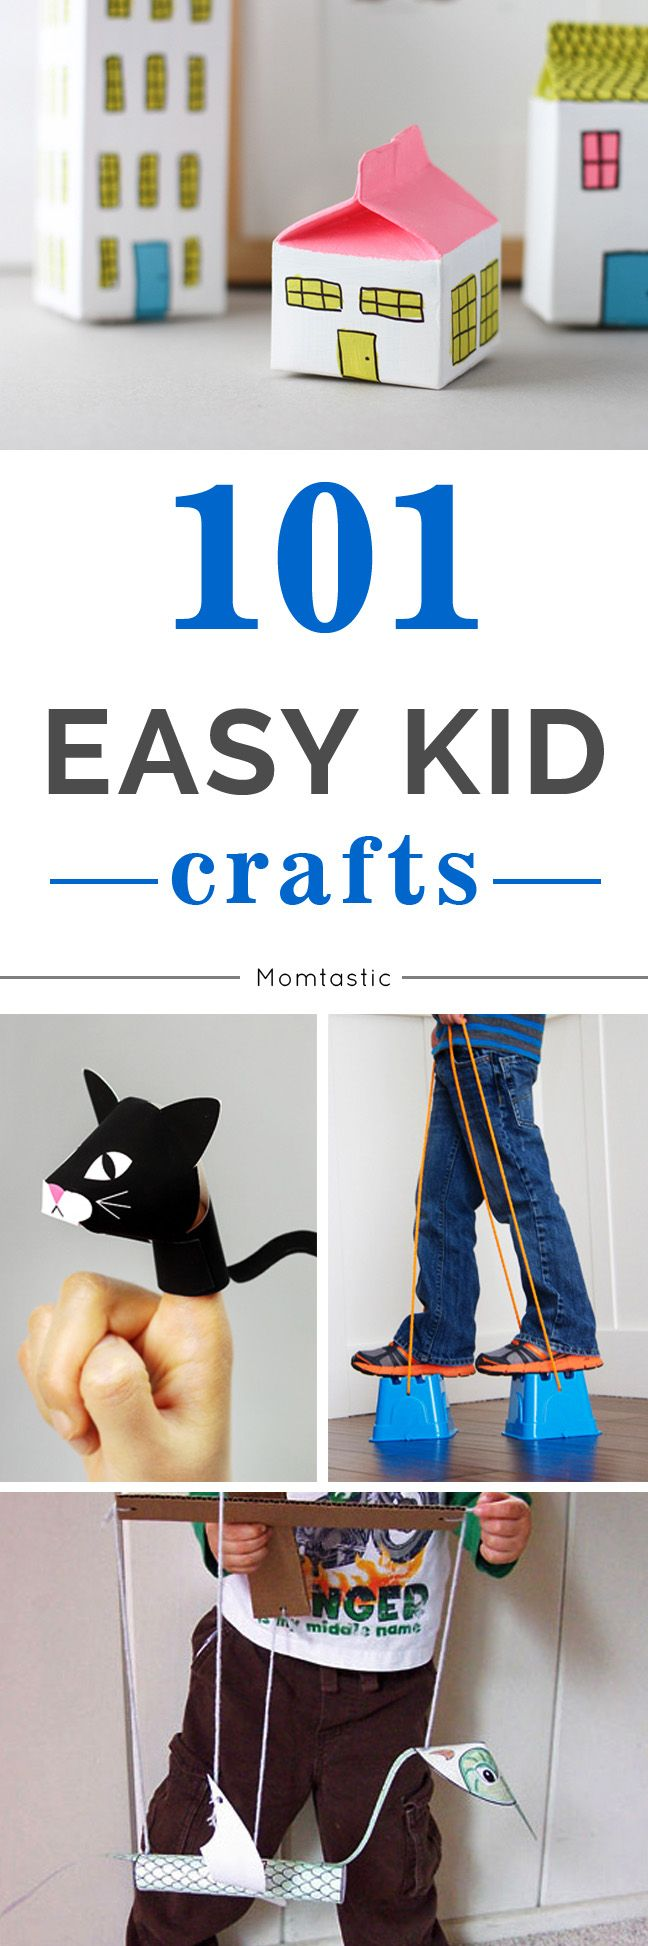 101 easy and fun kid crafts